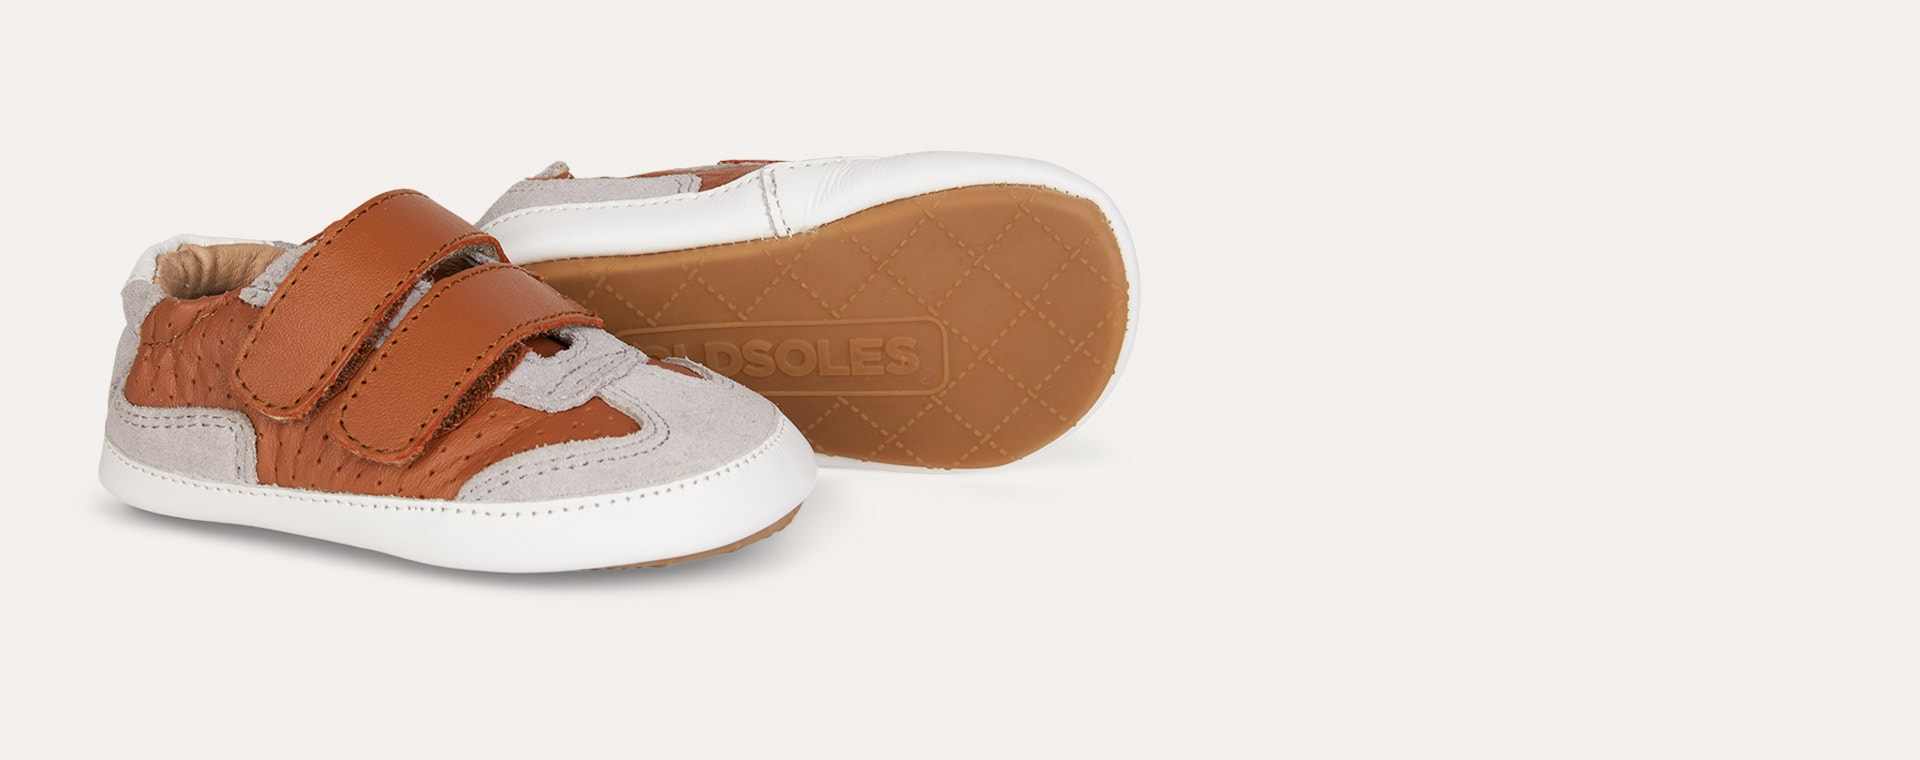 Tan old soles Revival Baby Soft sole shoe